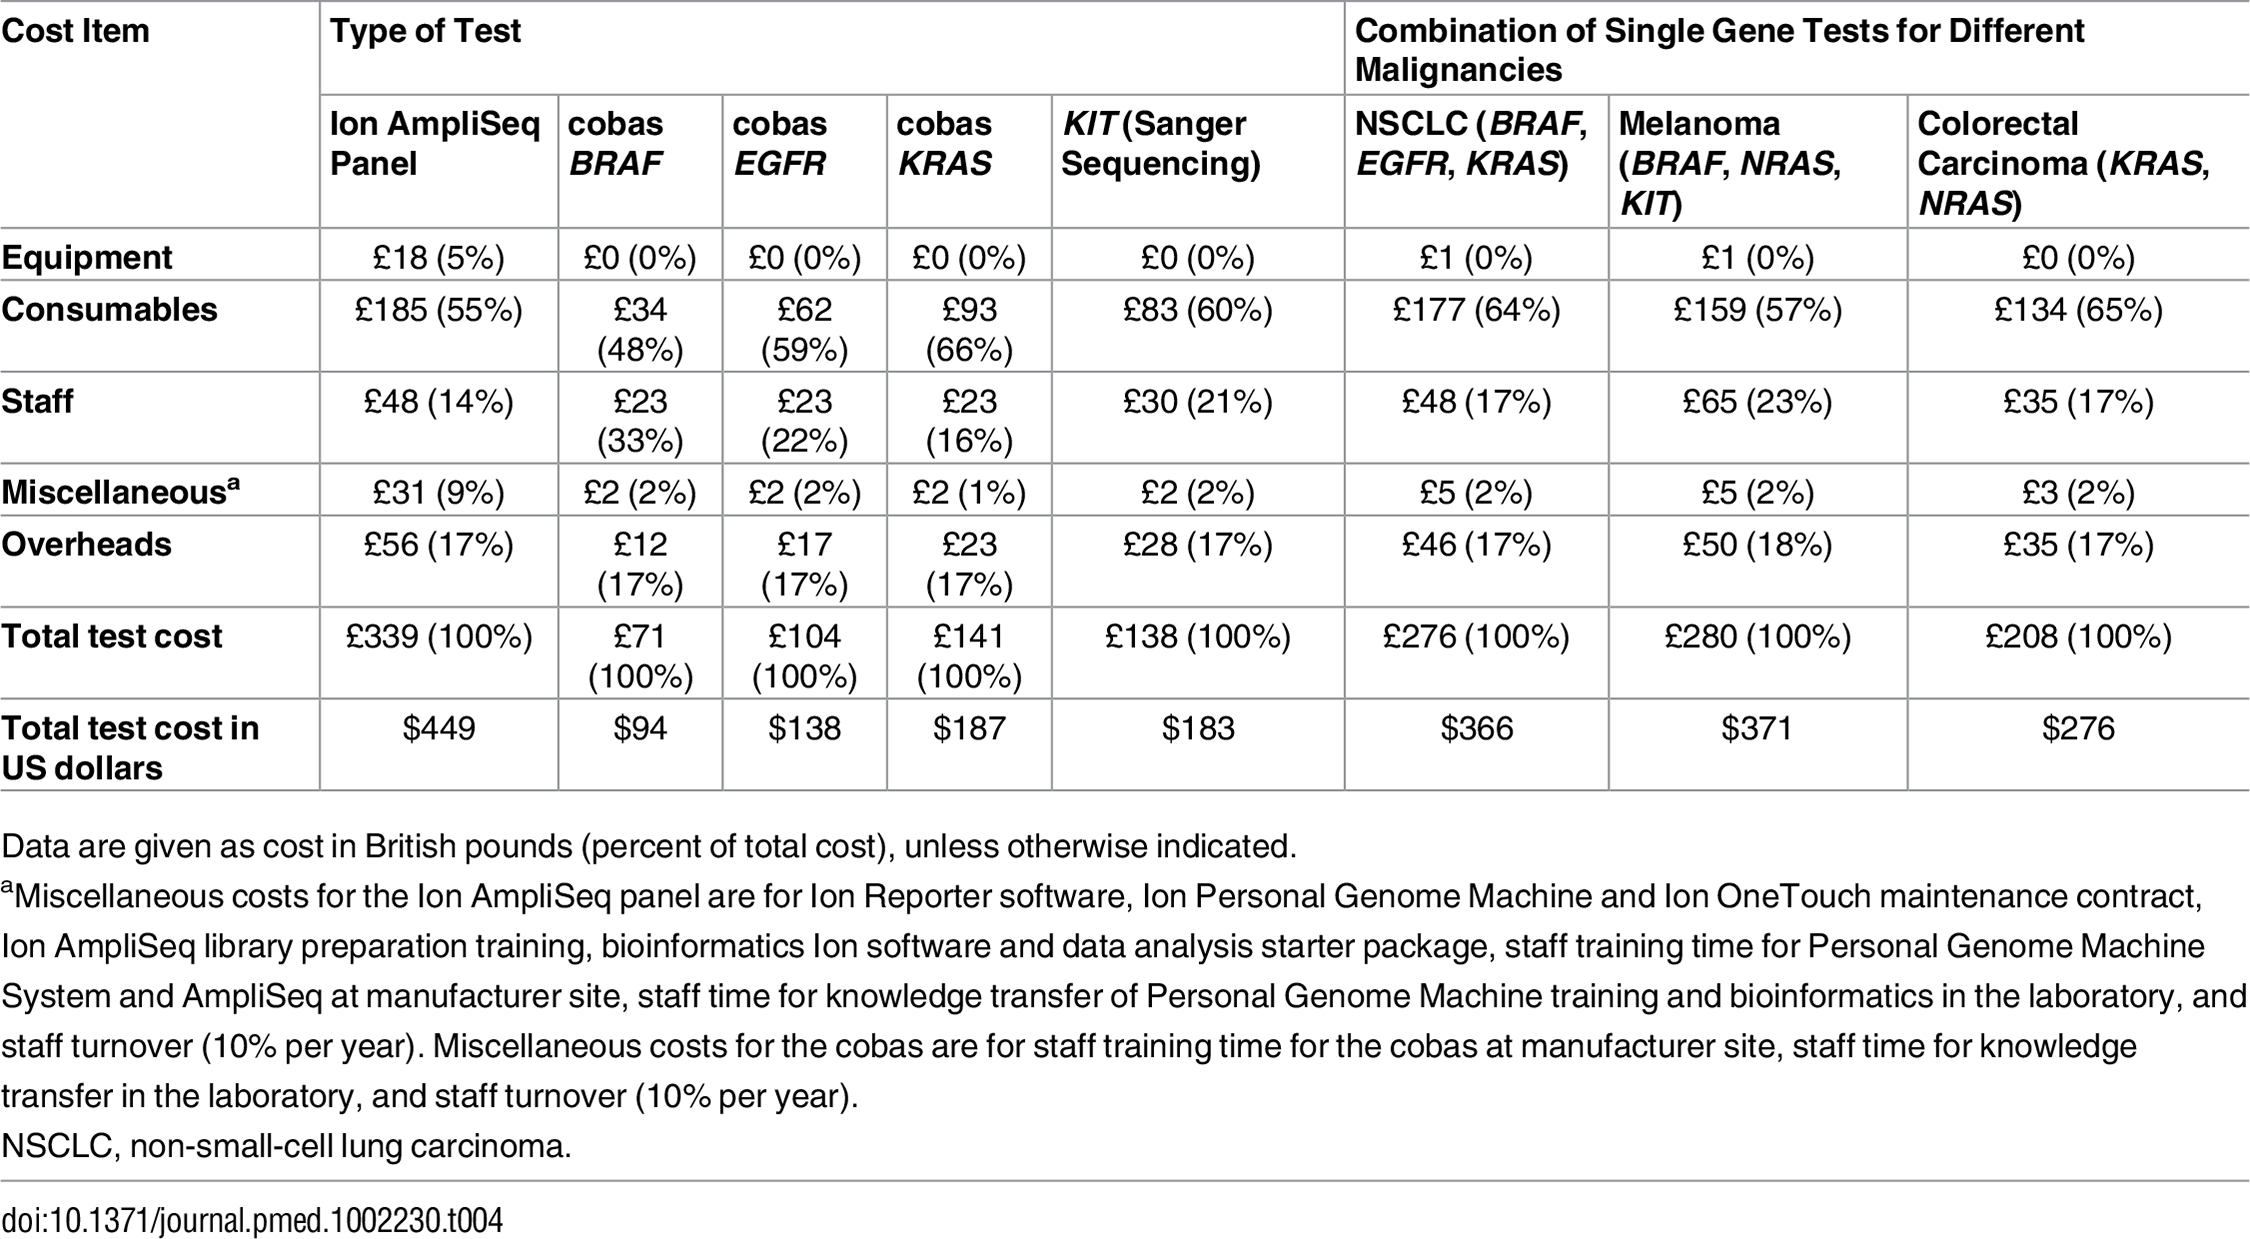 Total cost per sample and type of malignancy by resource category.